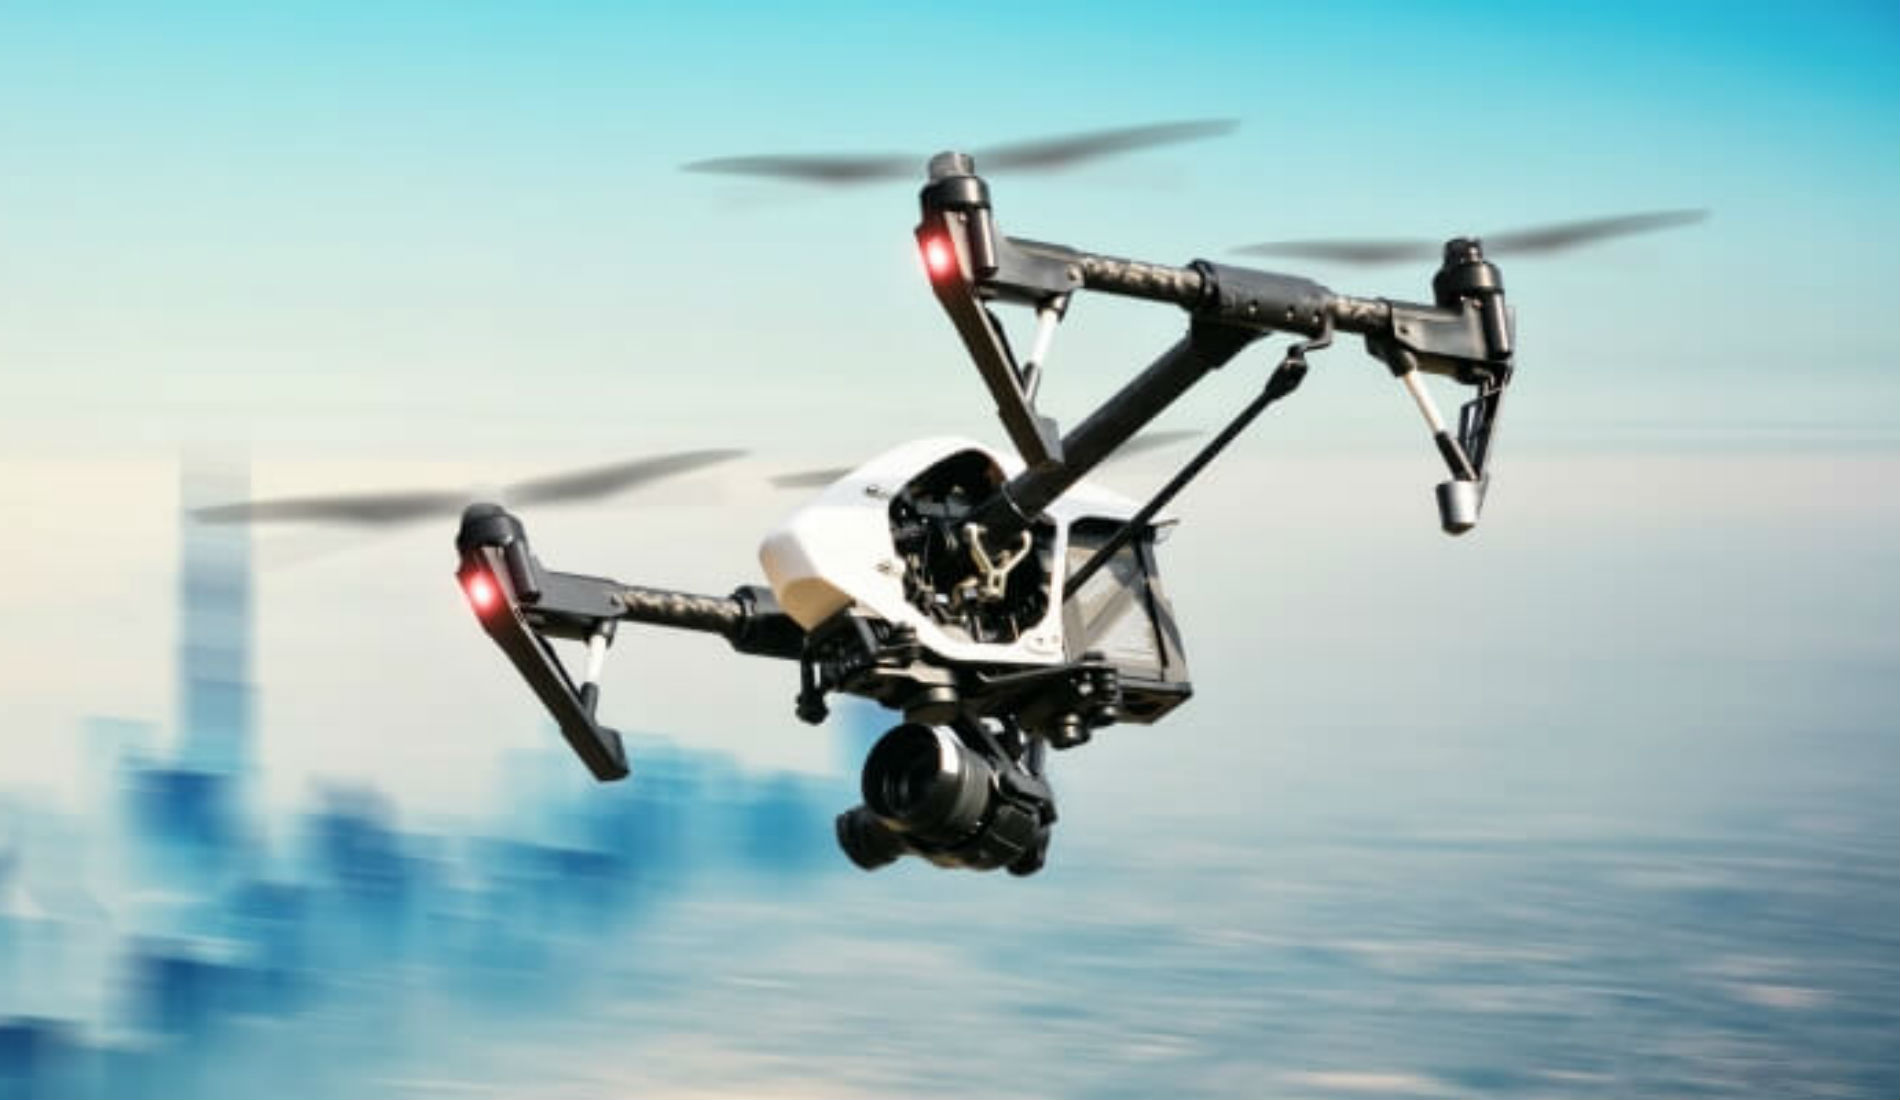 The advent of the drone for civilian and commercial use is o